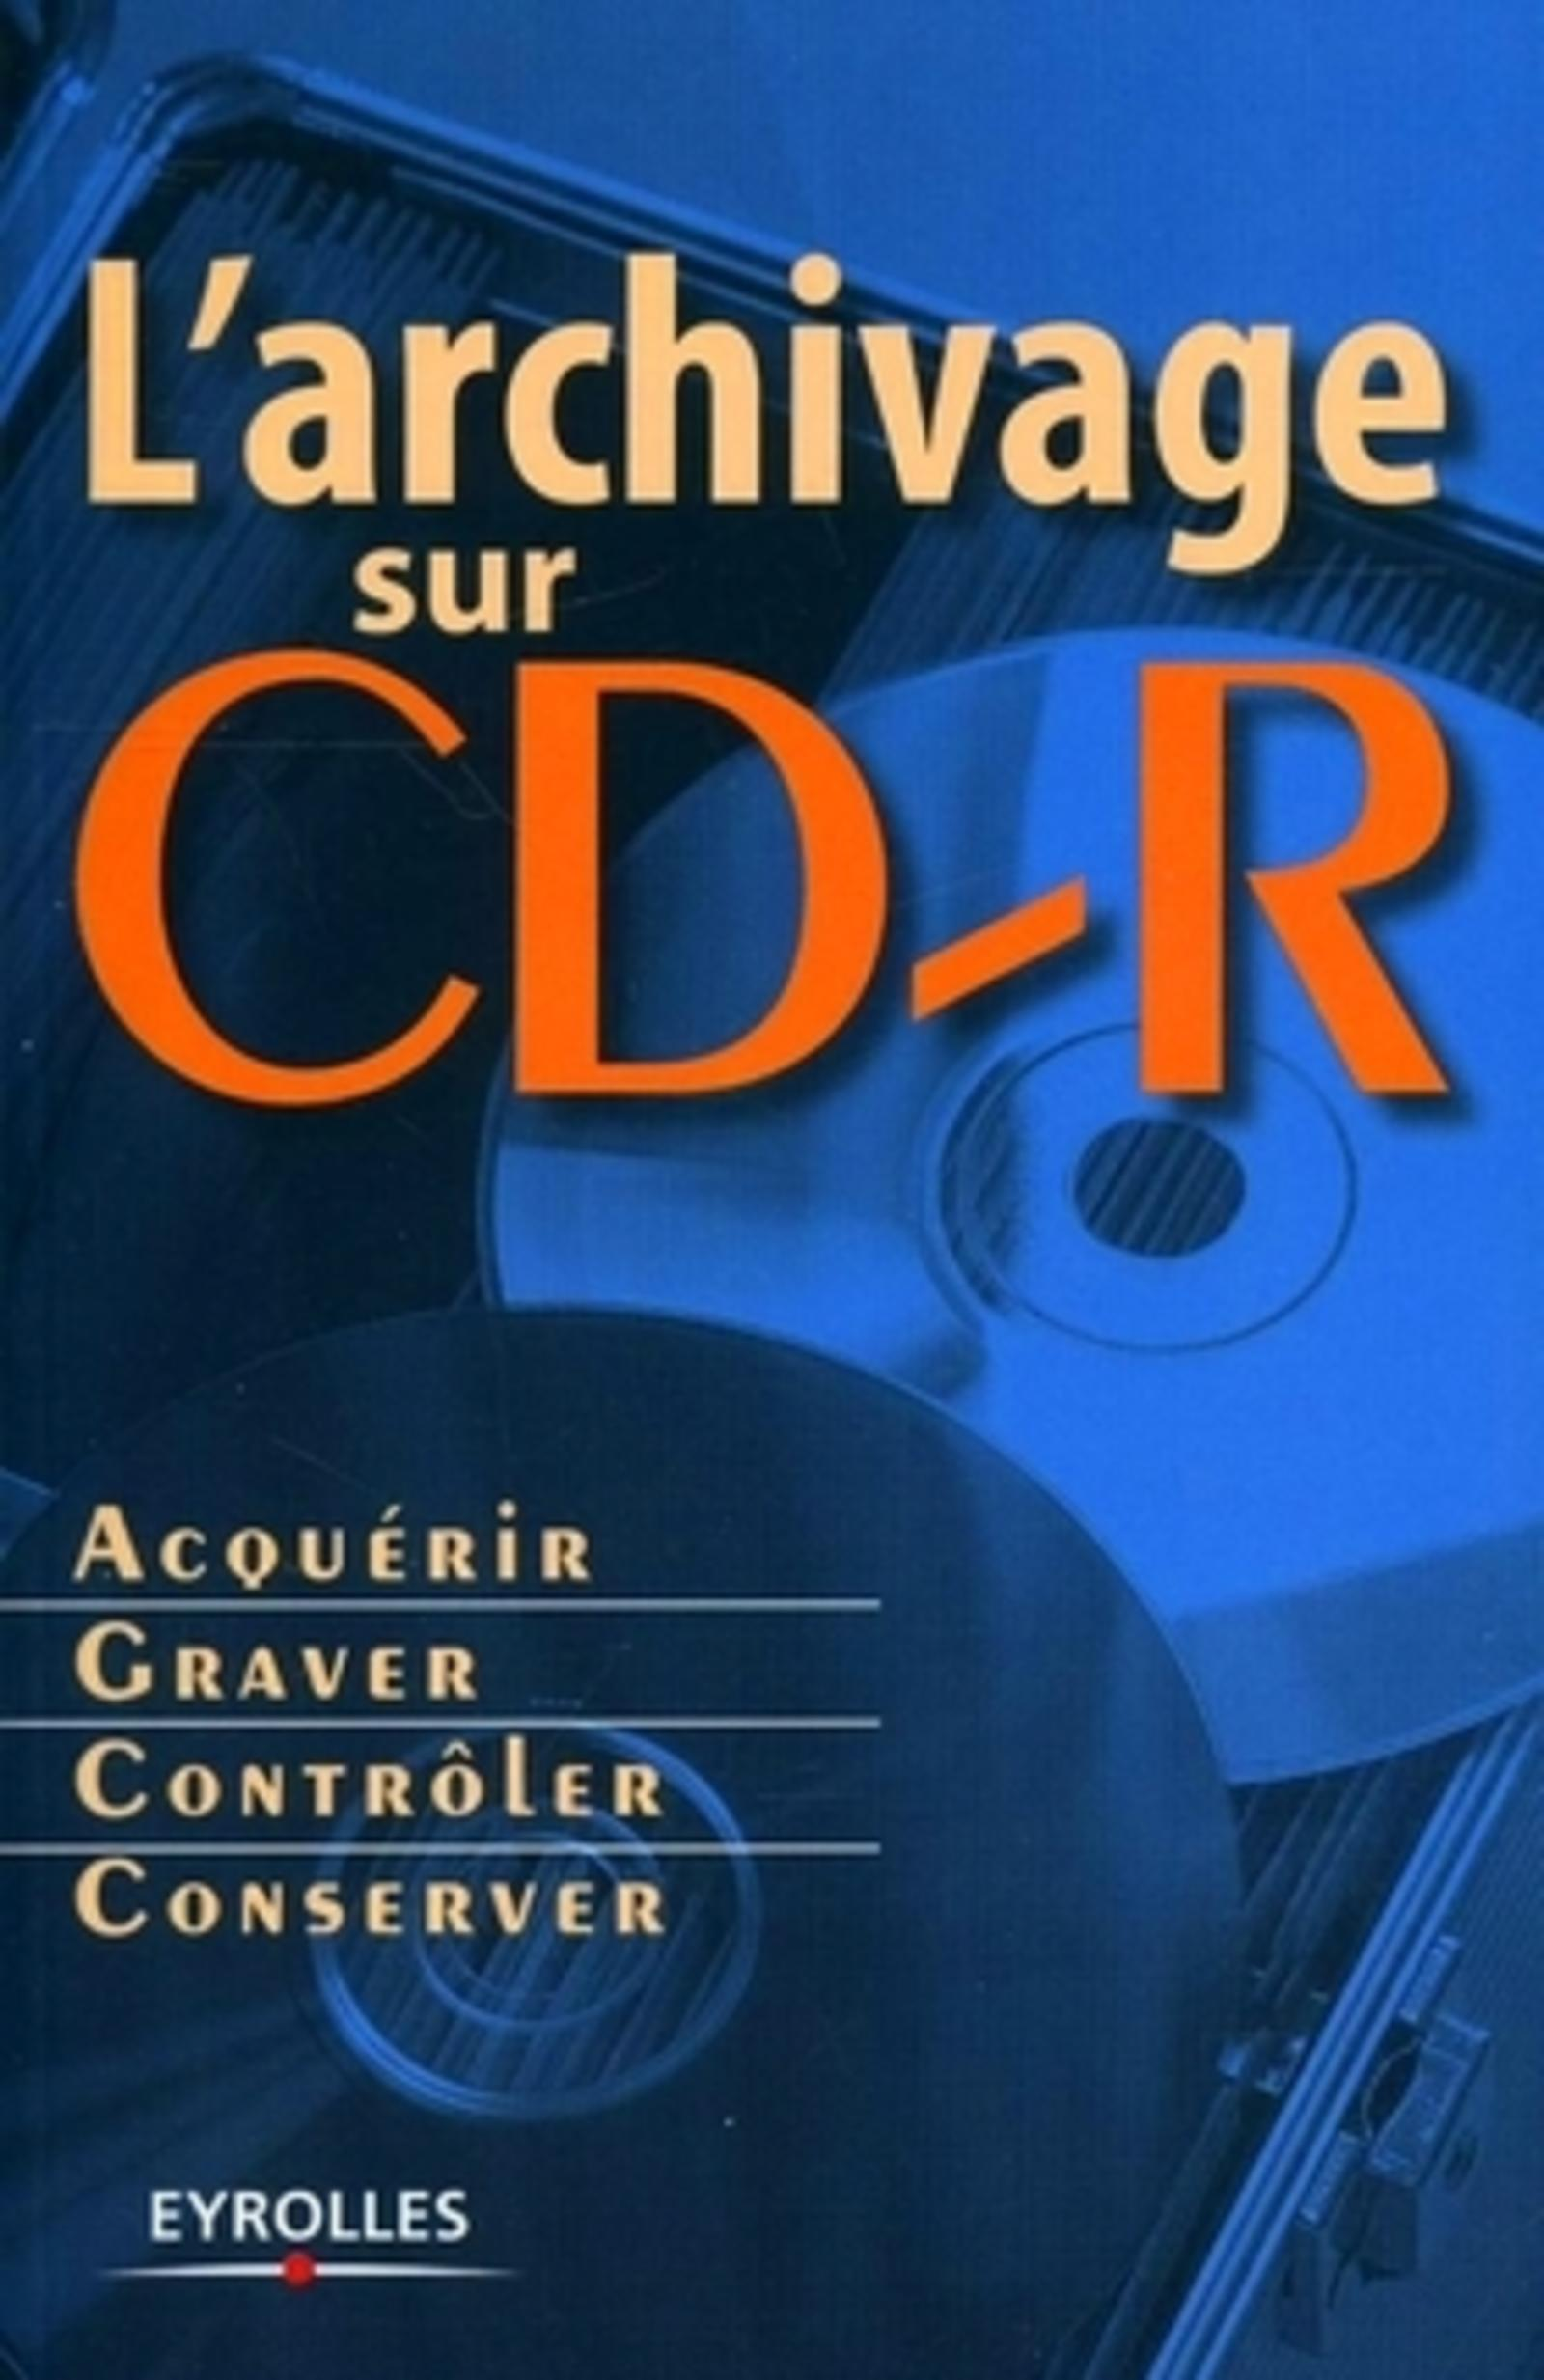 L'ARCHIVAGE SUR CD-R - ACQUERIR, GRAVER, CONTROLER, CONSERVER